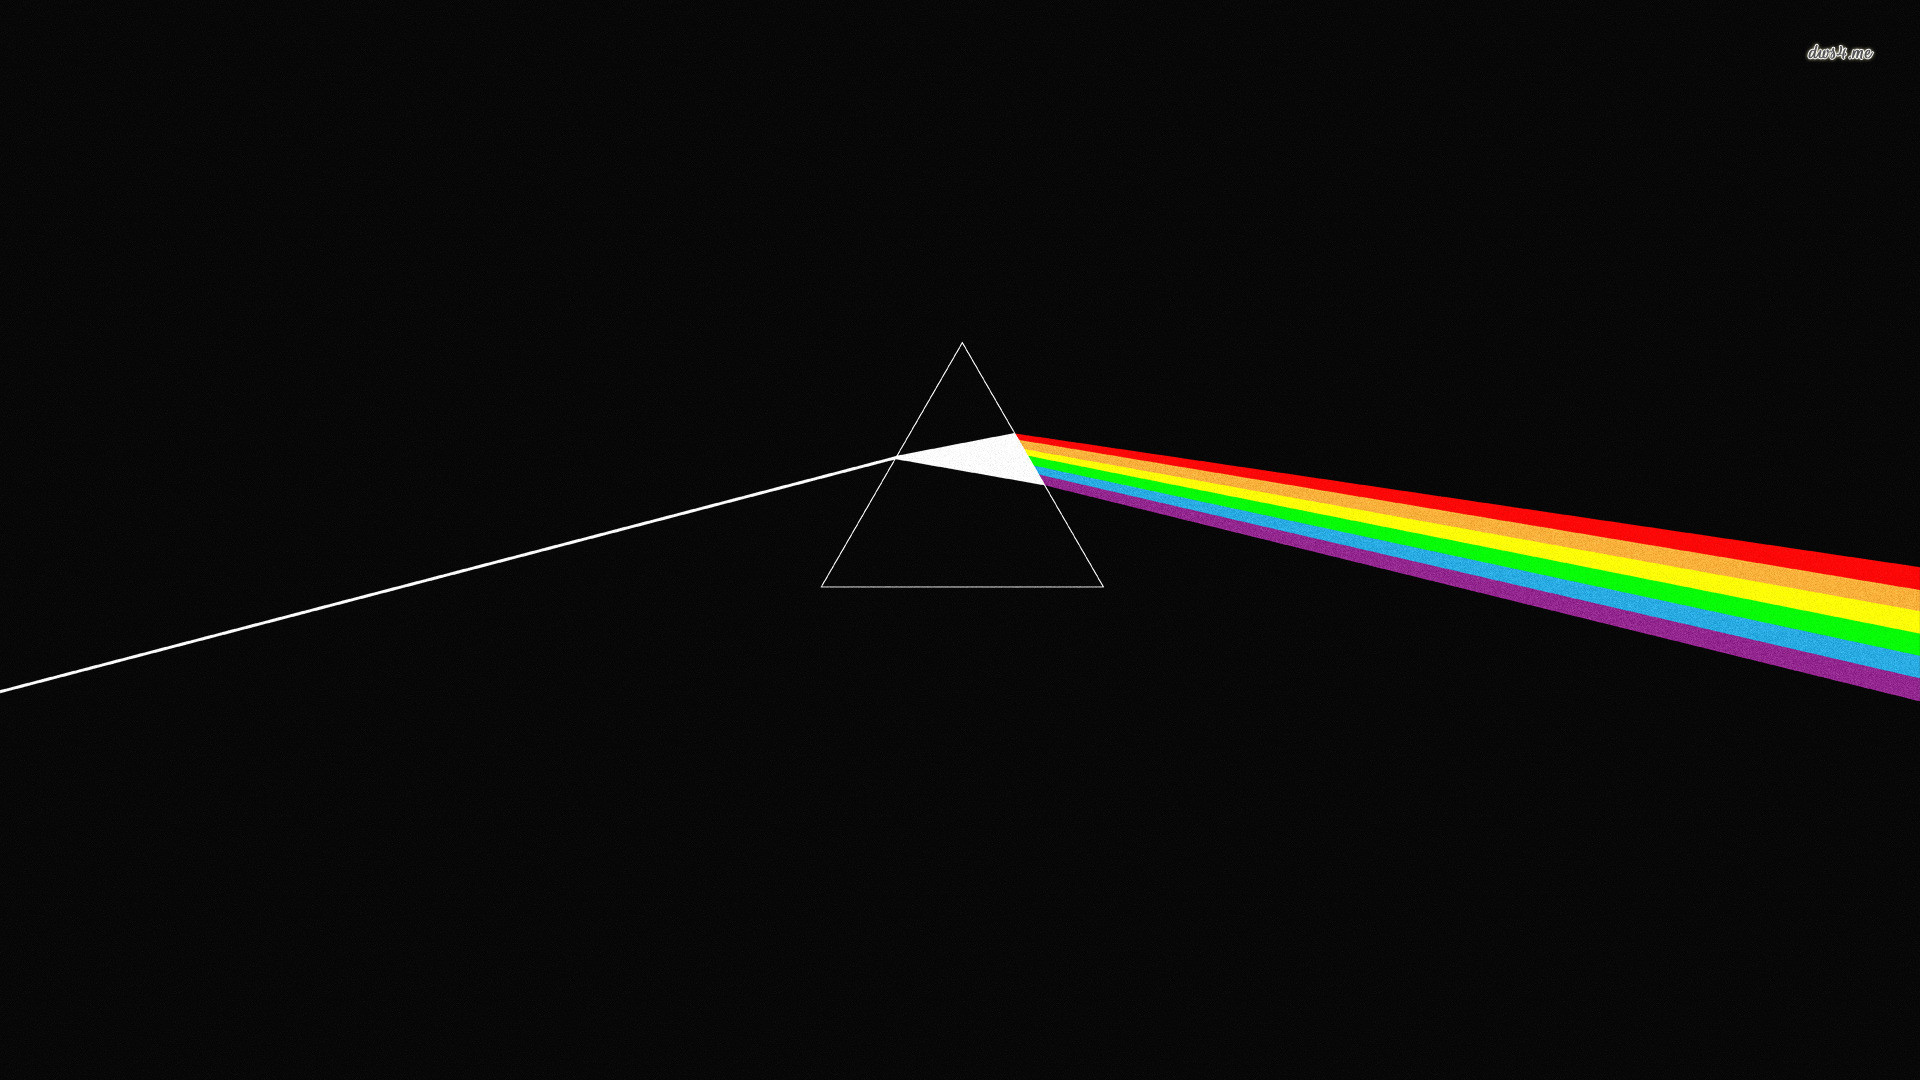 1920x1080 Pink Floyd Album Covers - wallpaper.